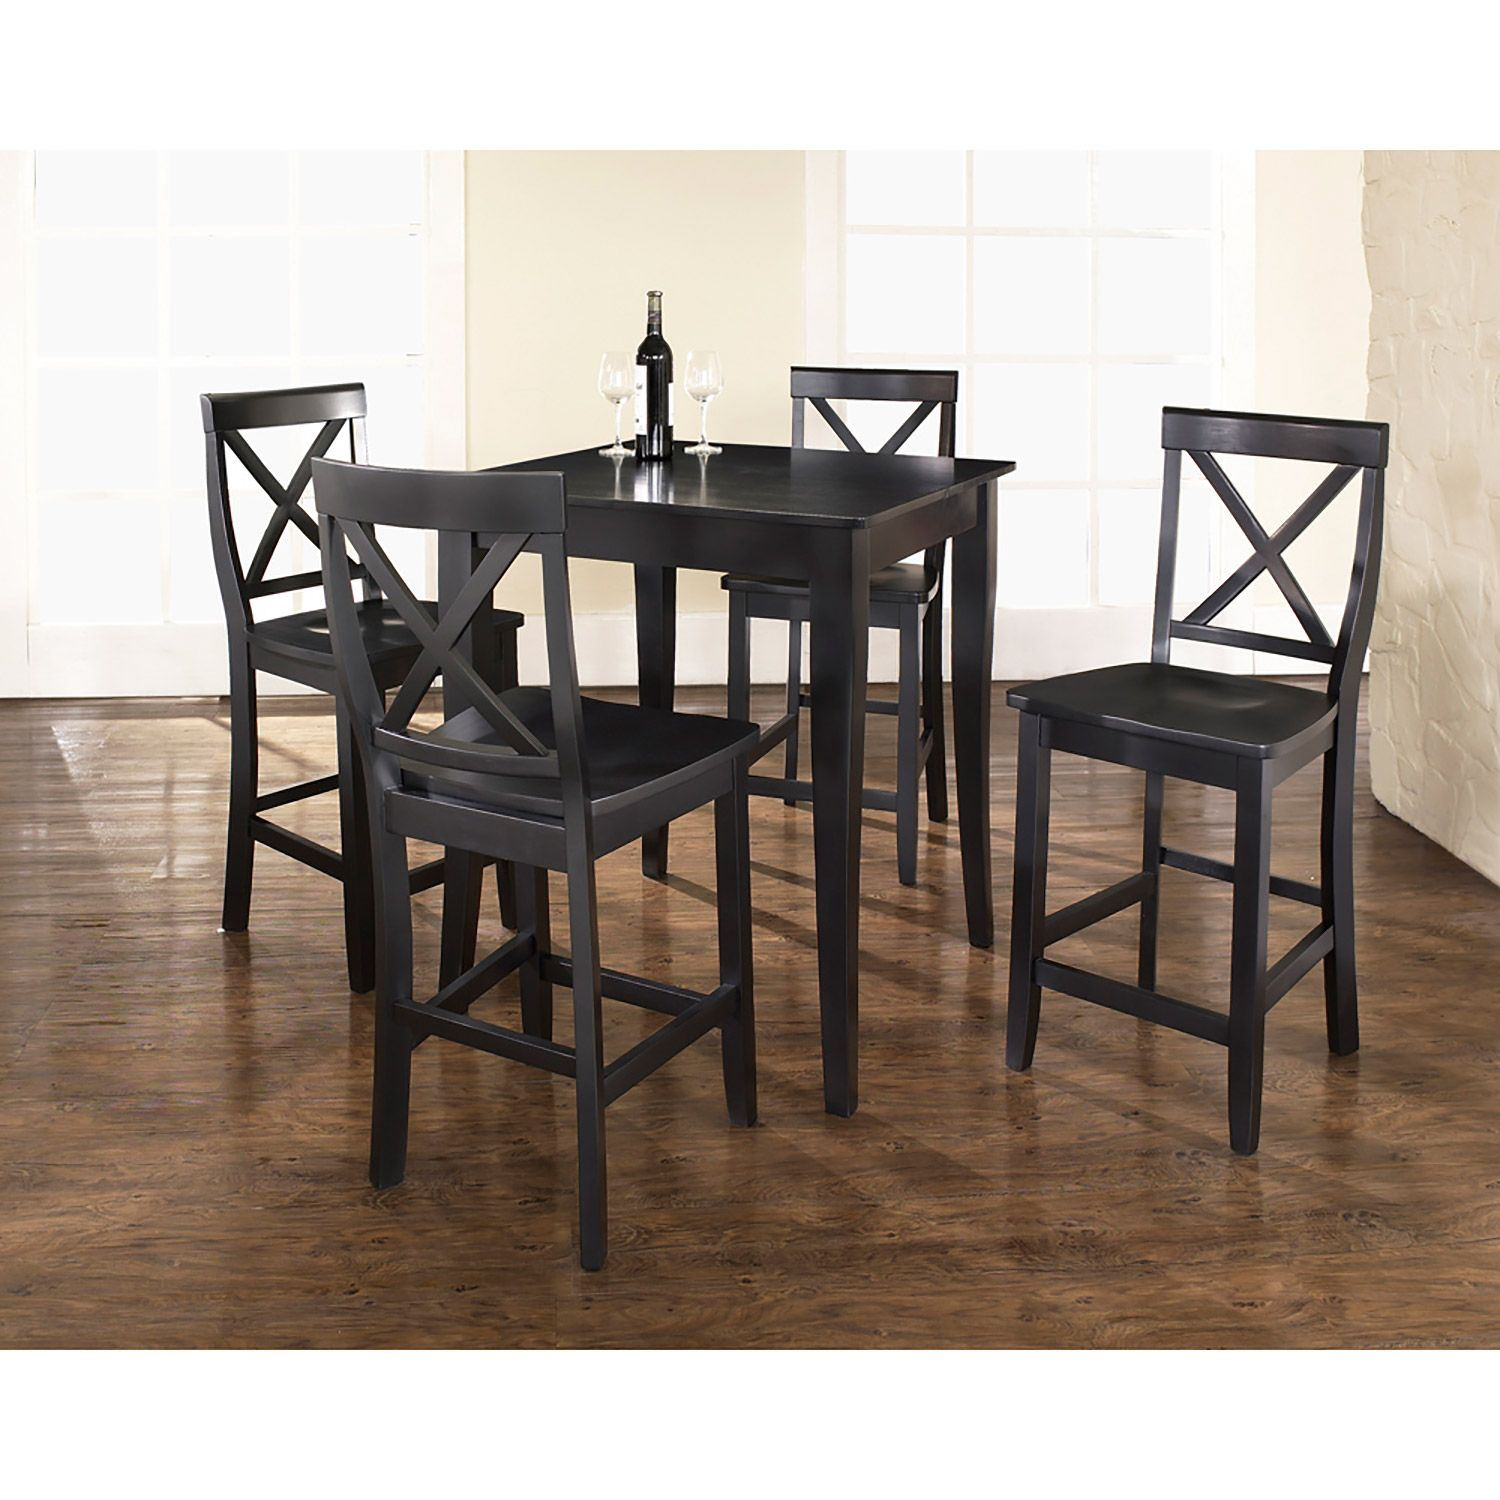 5 Piece Pub Dining Set Black D Kd520001bk Crosley